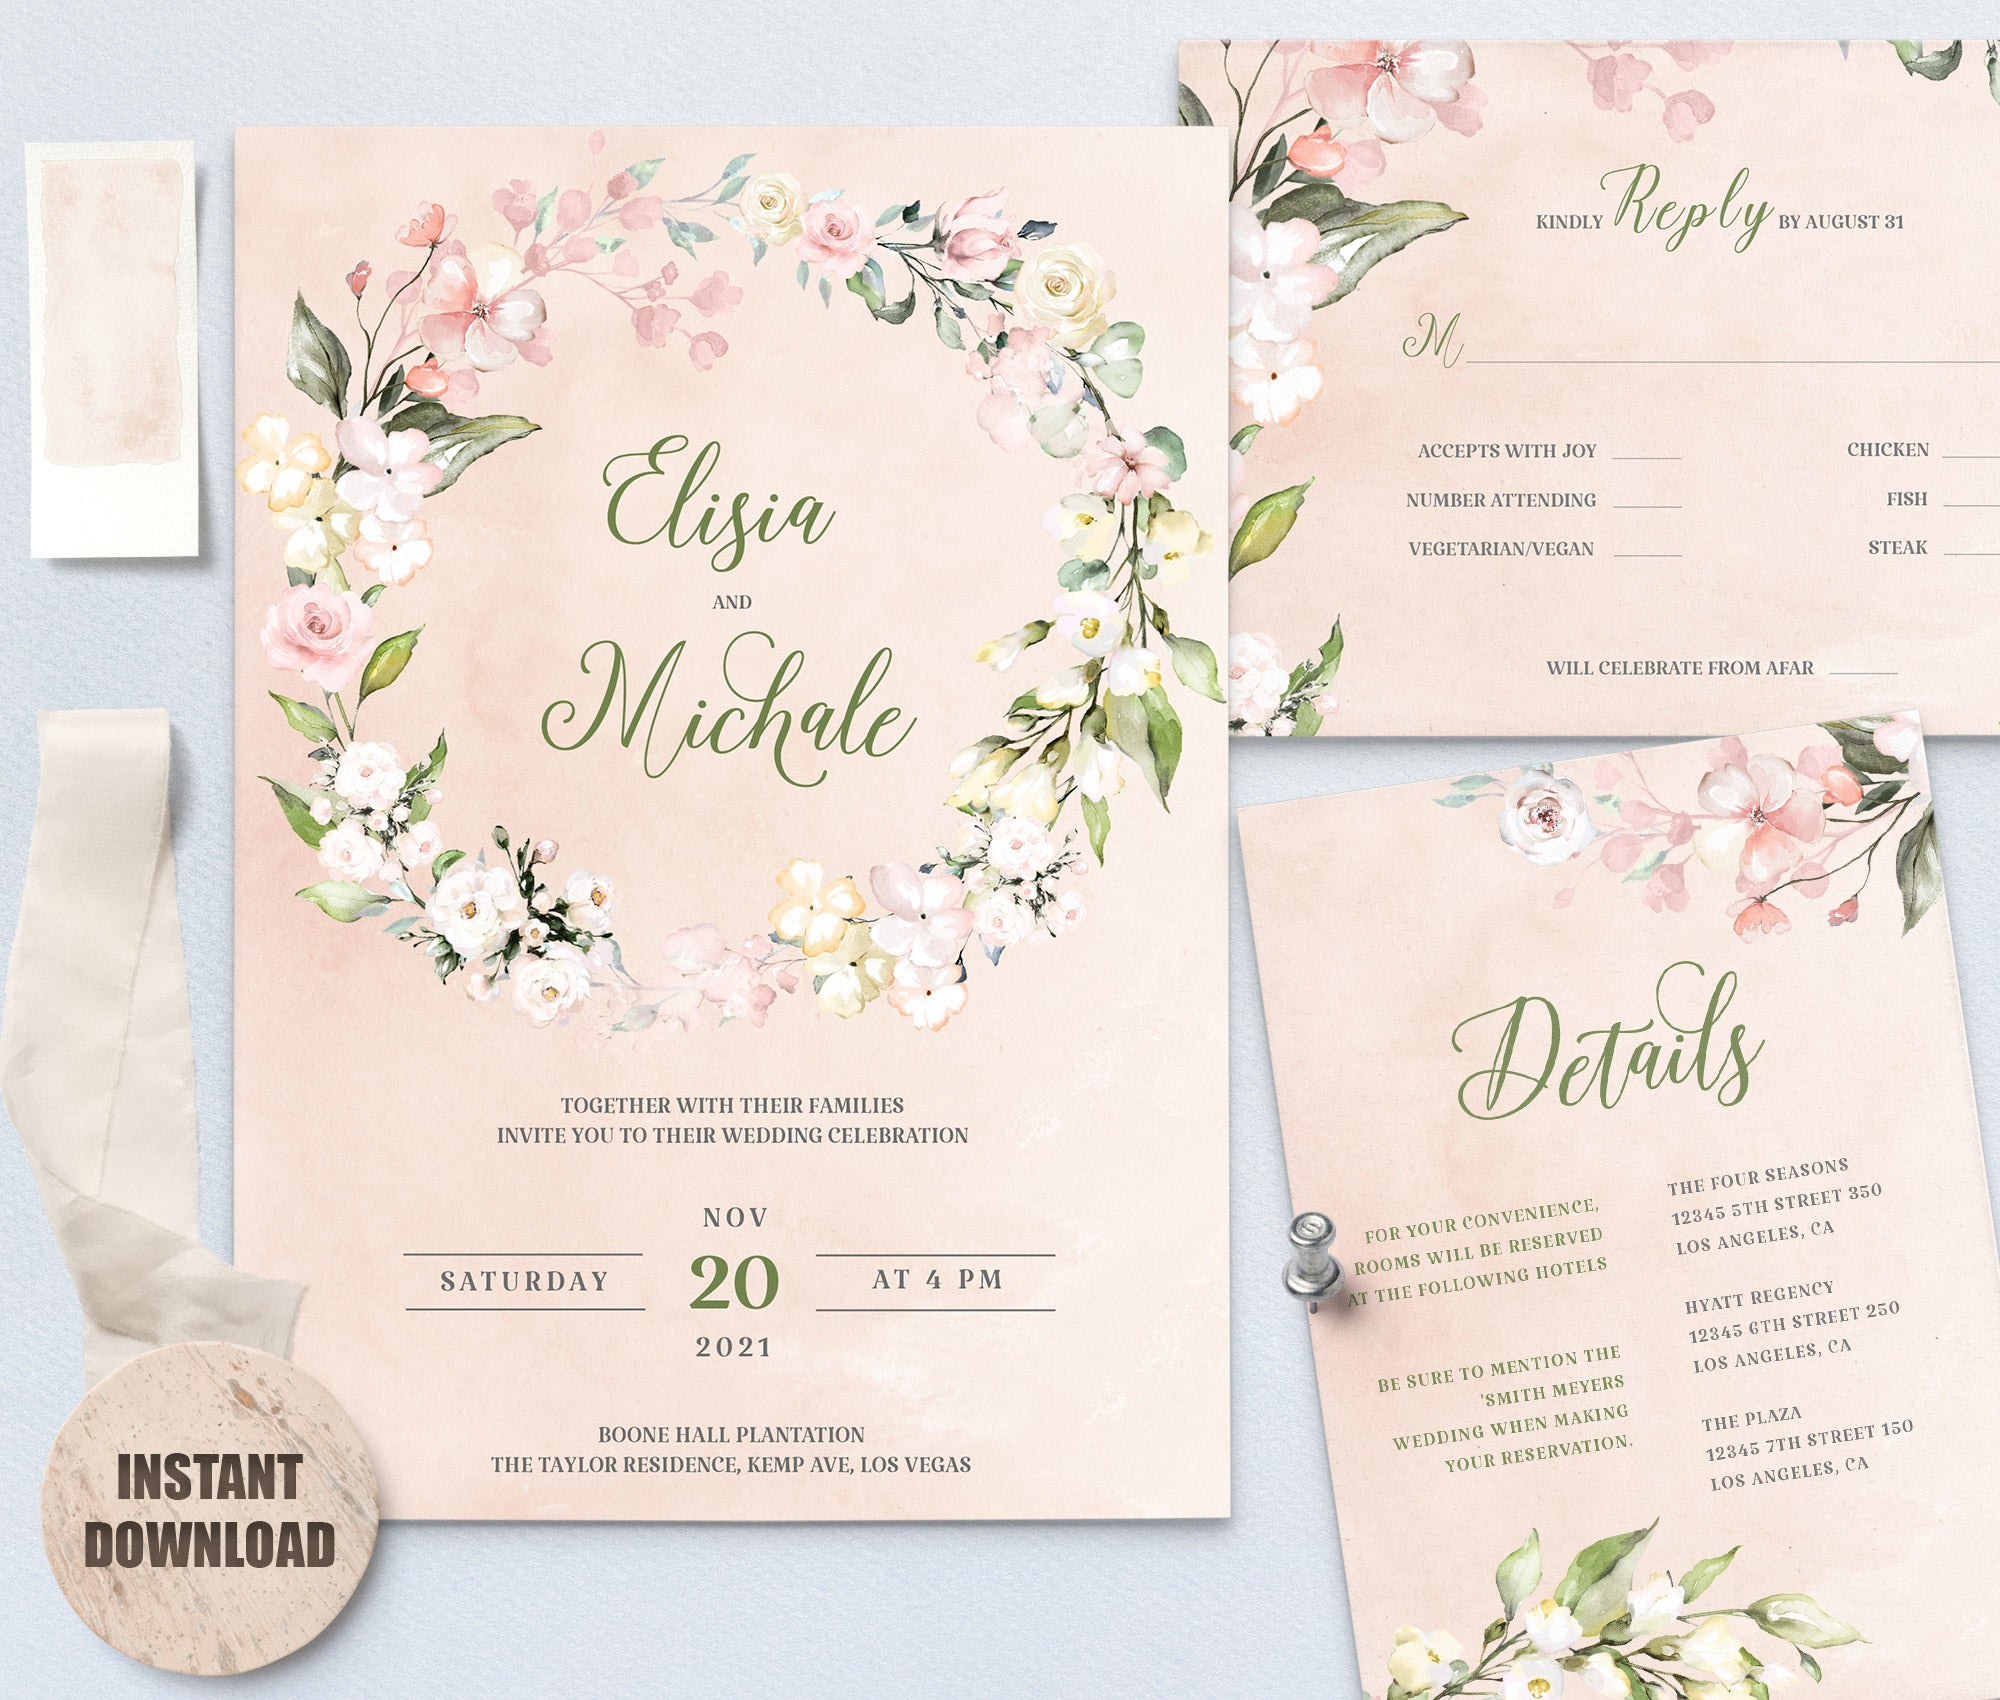 LOVAL Wedding Template Bundles set 5